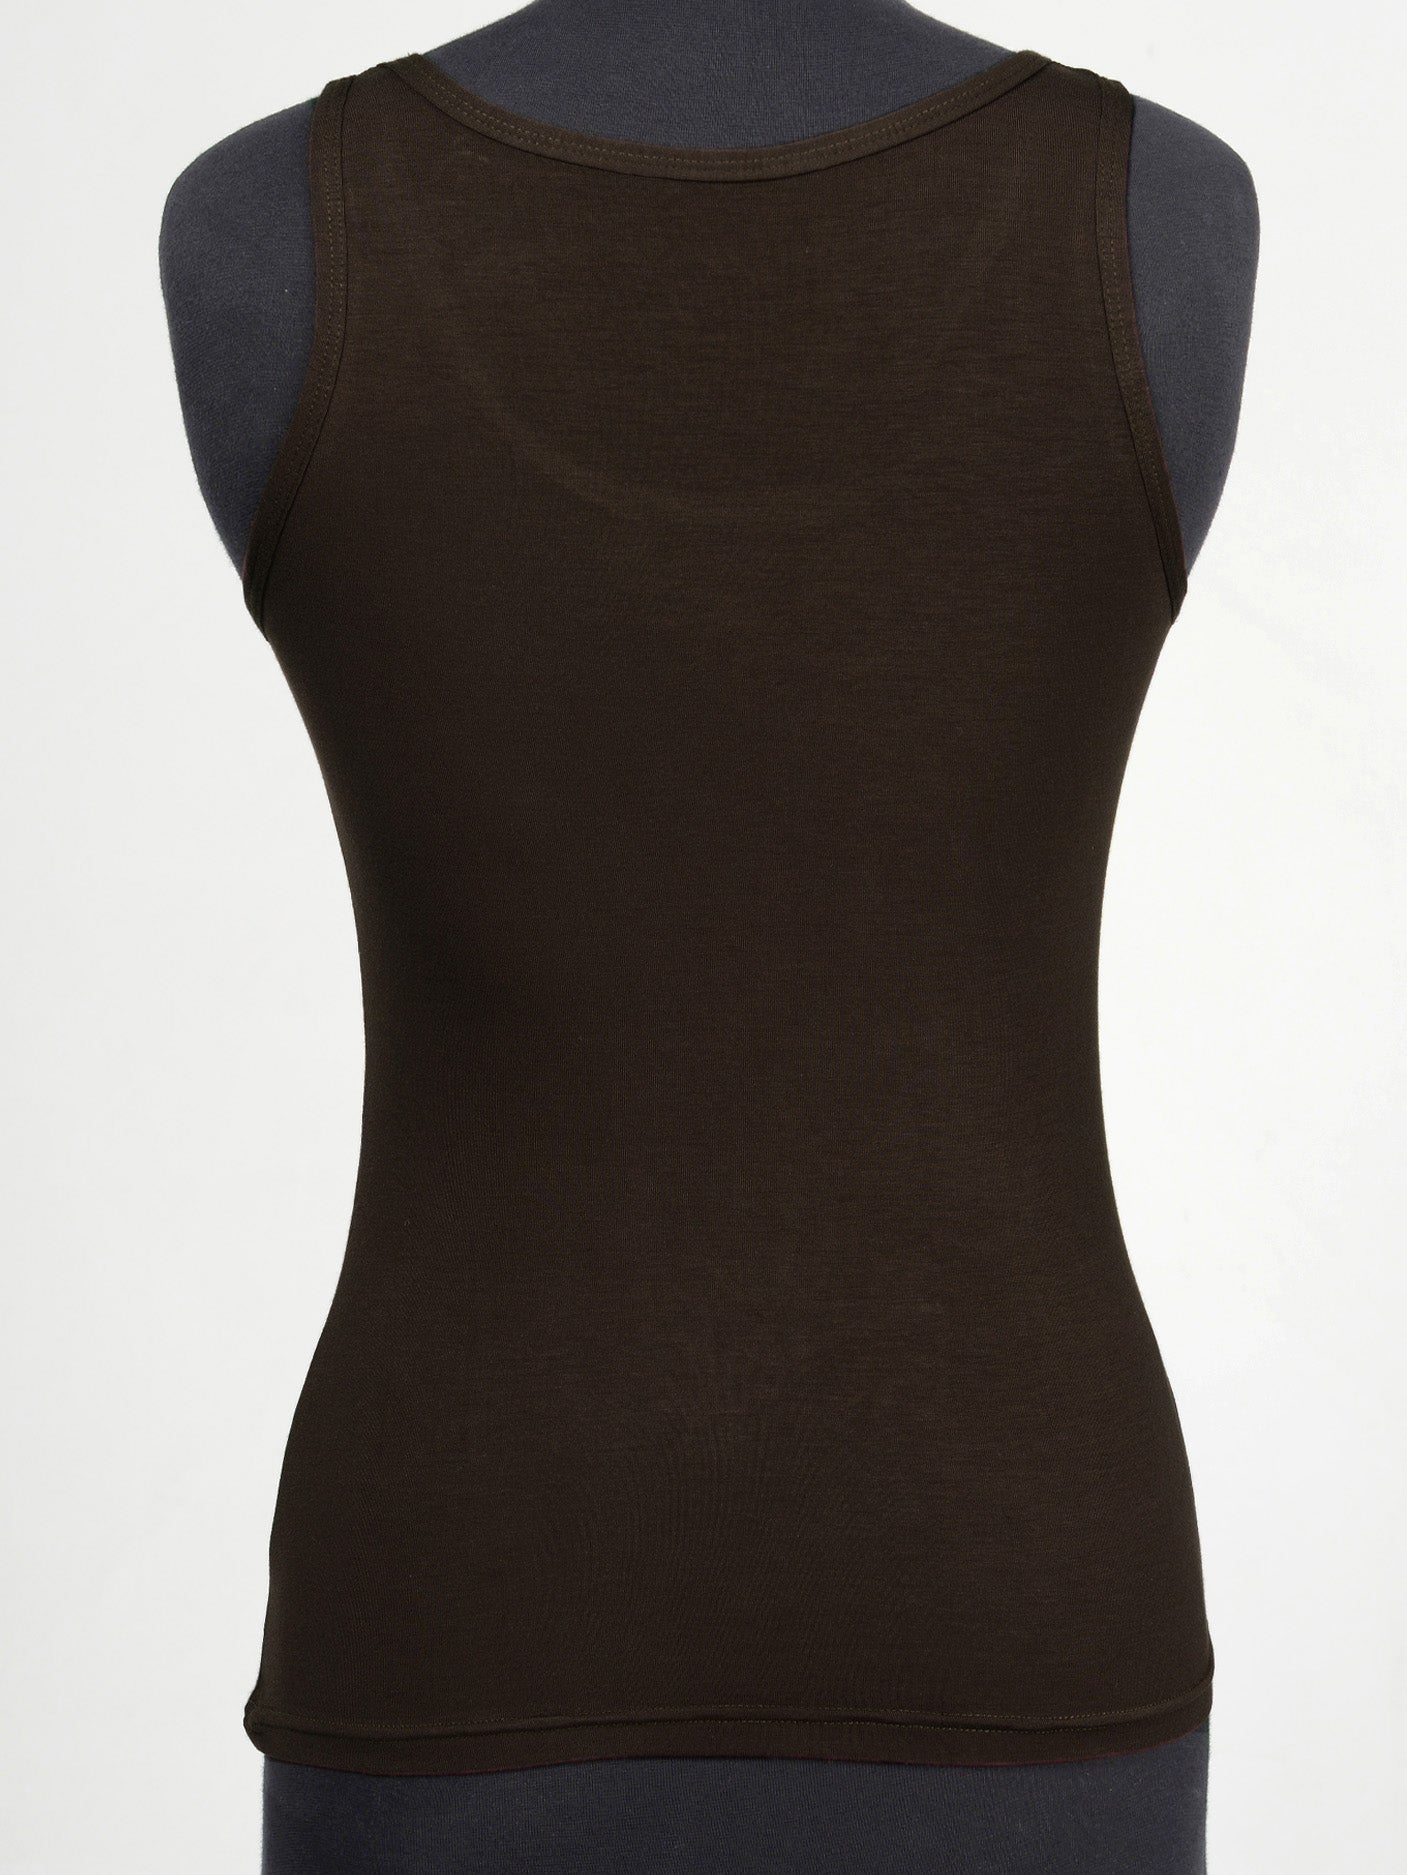 Brown Camisole